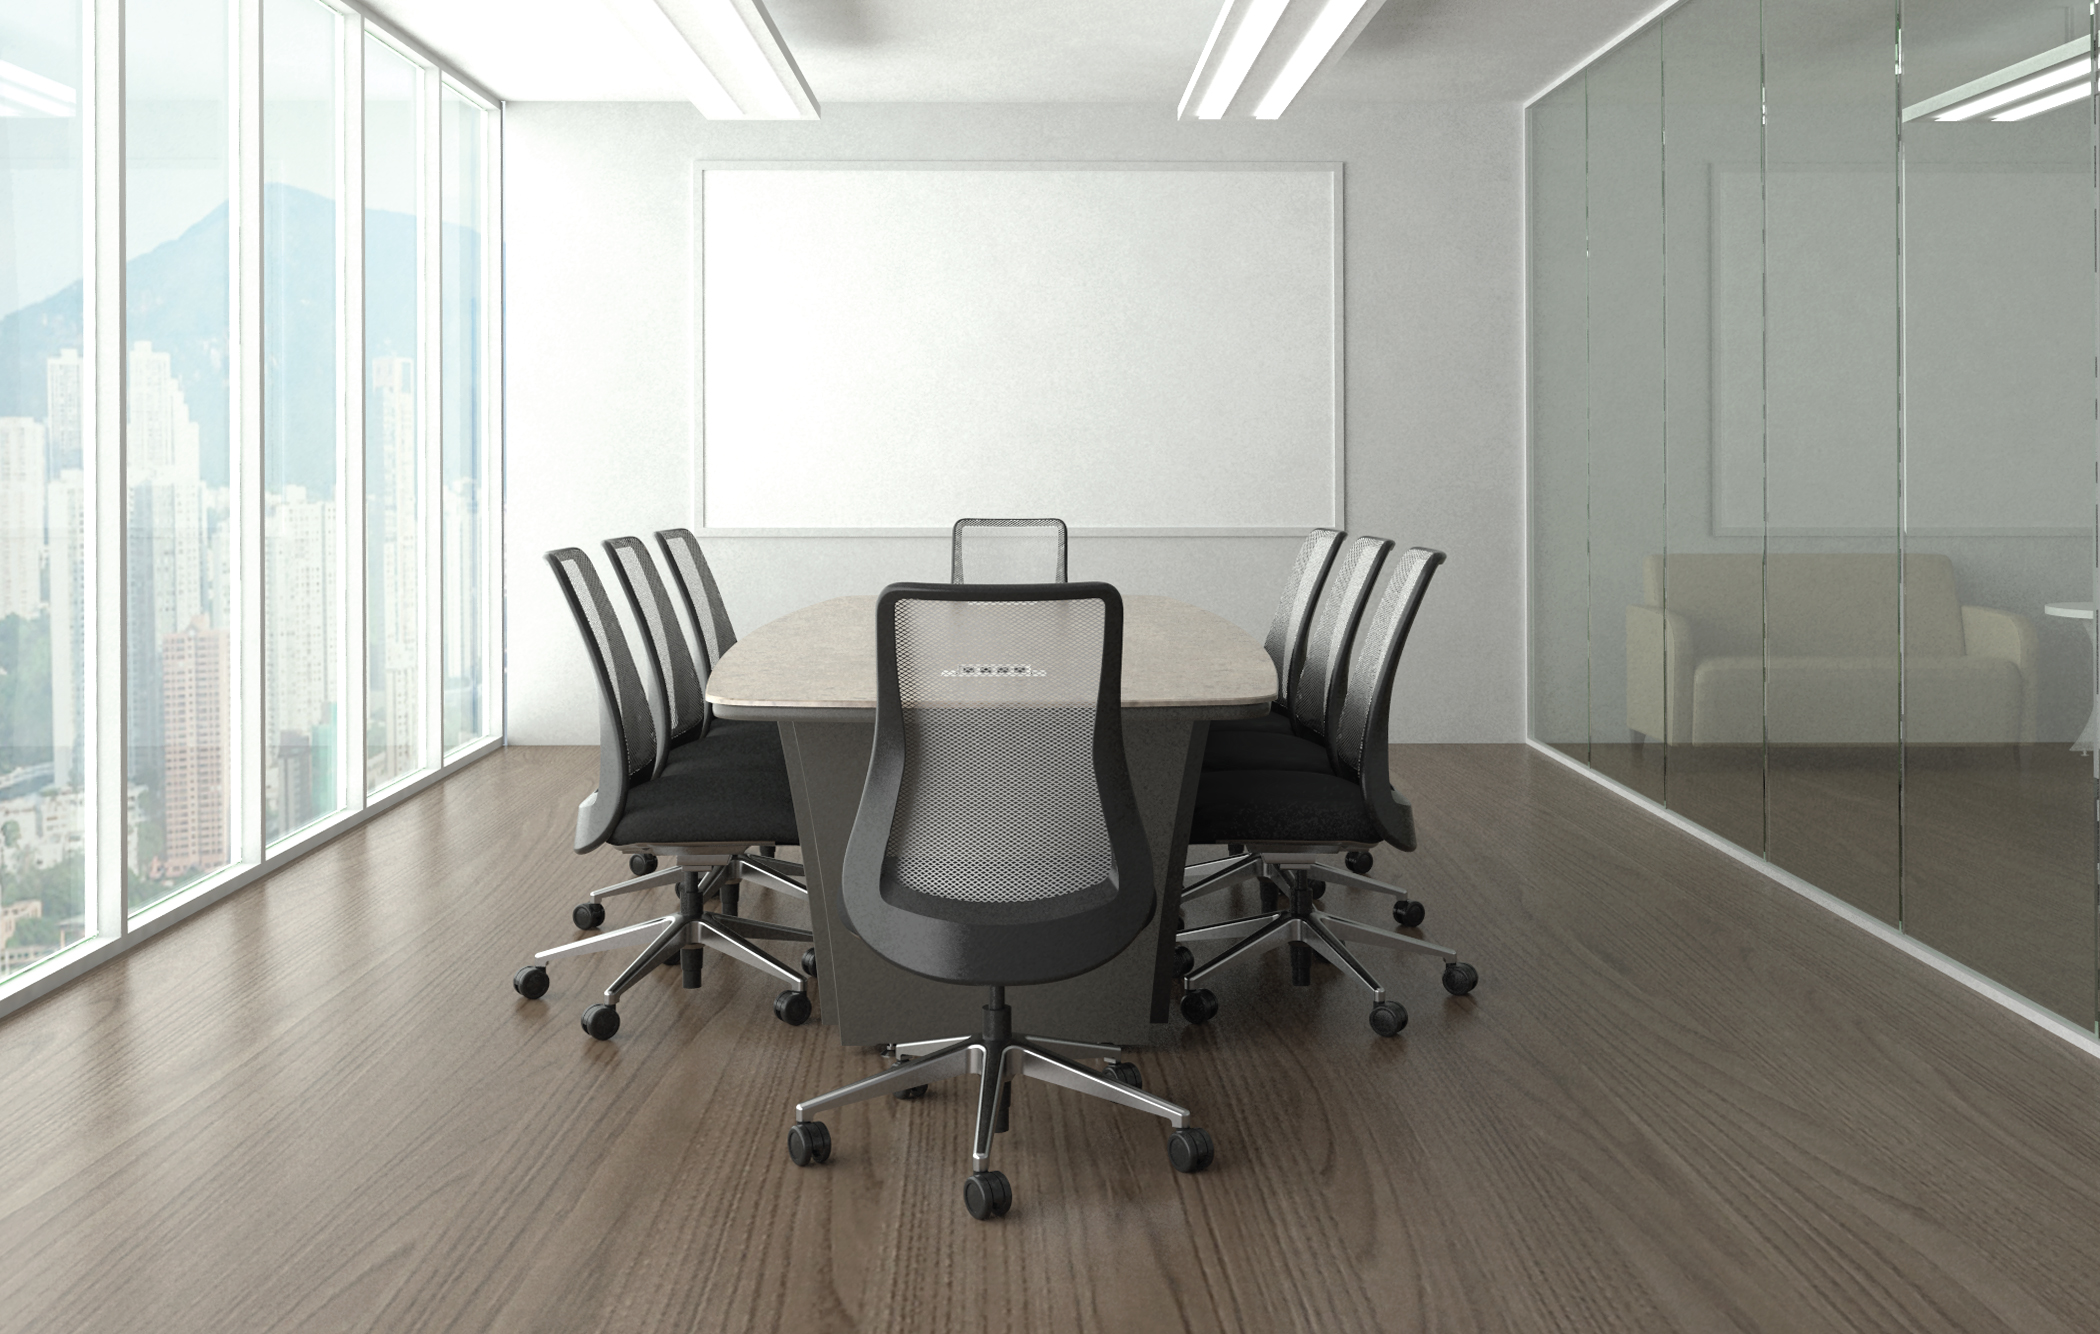 Using Collaborative Ergonomics to Solve Your Startup's Office Problems: Part II